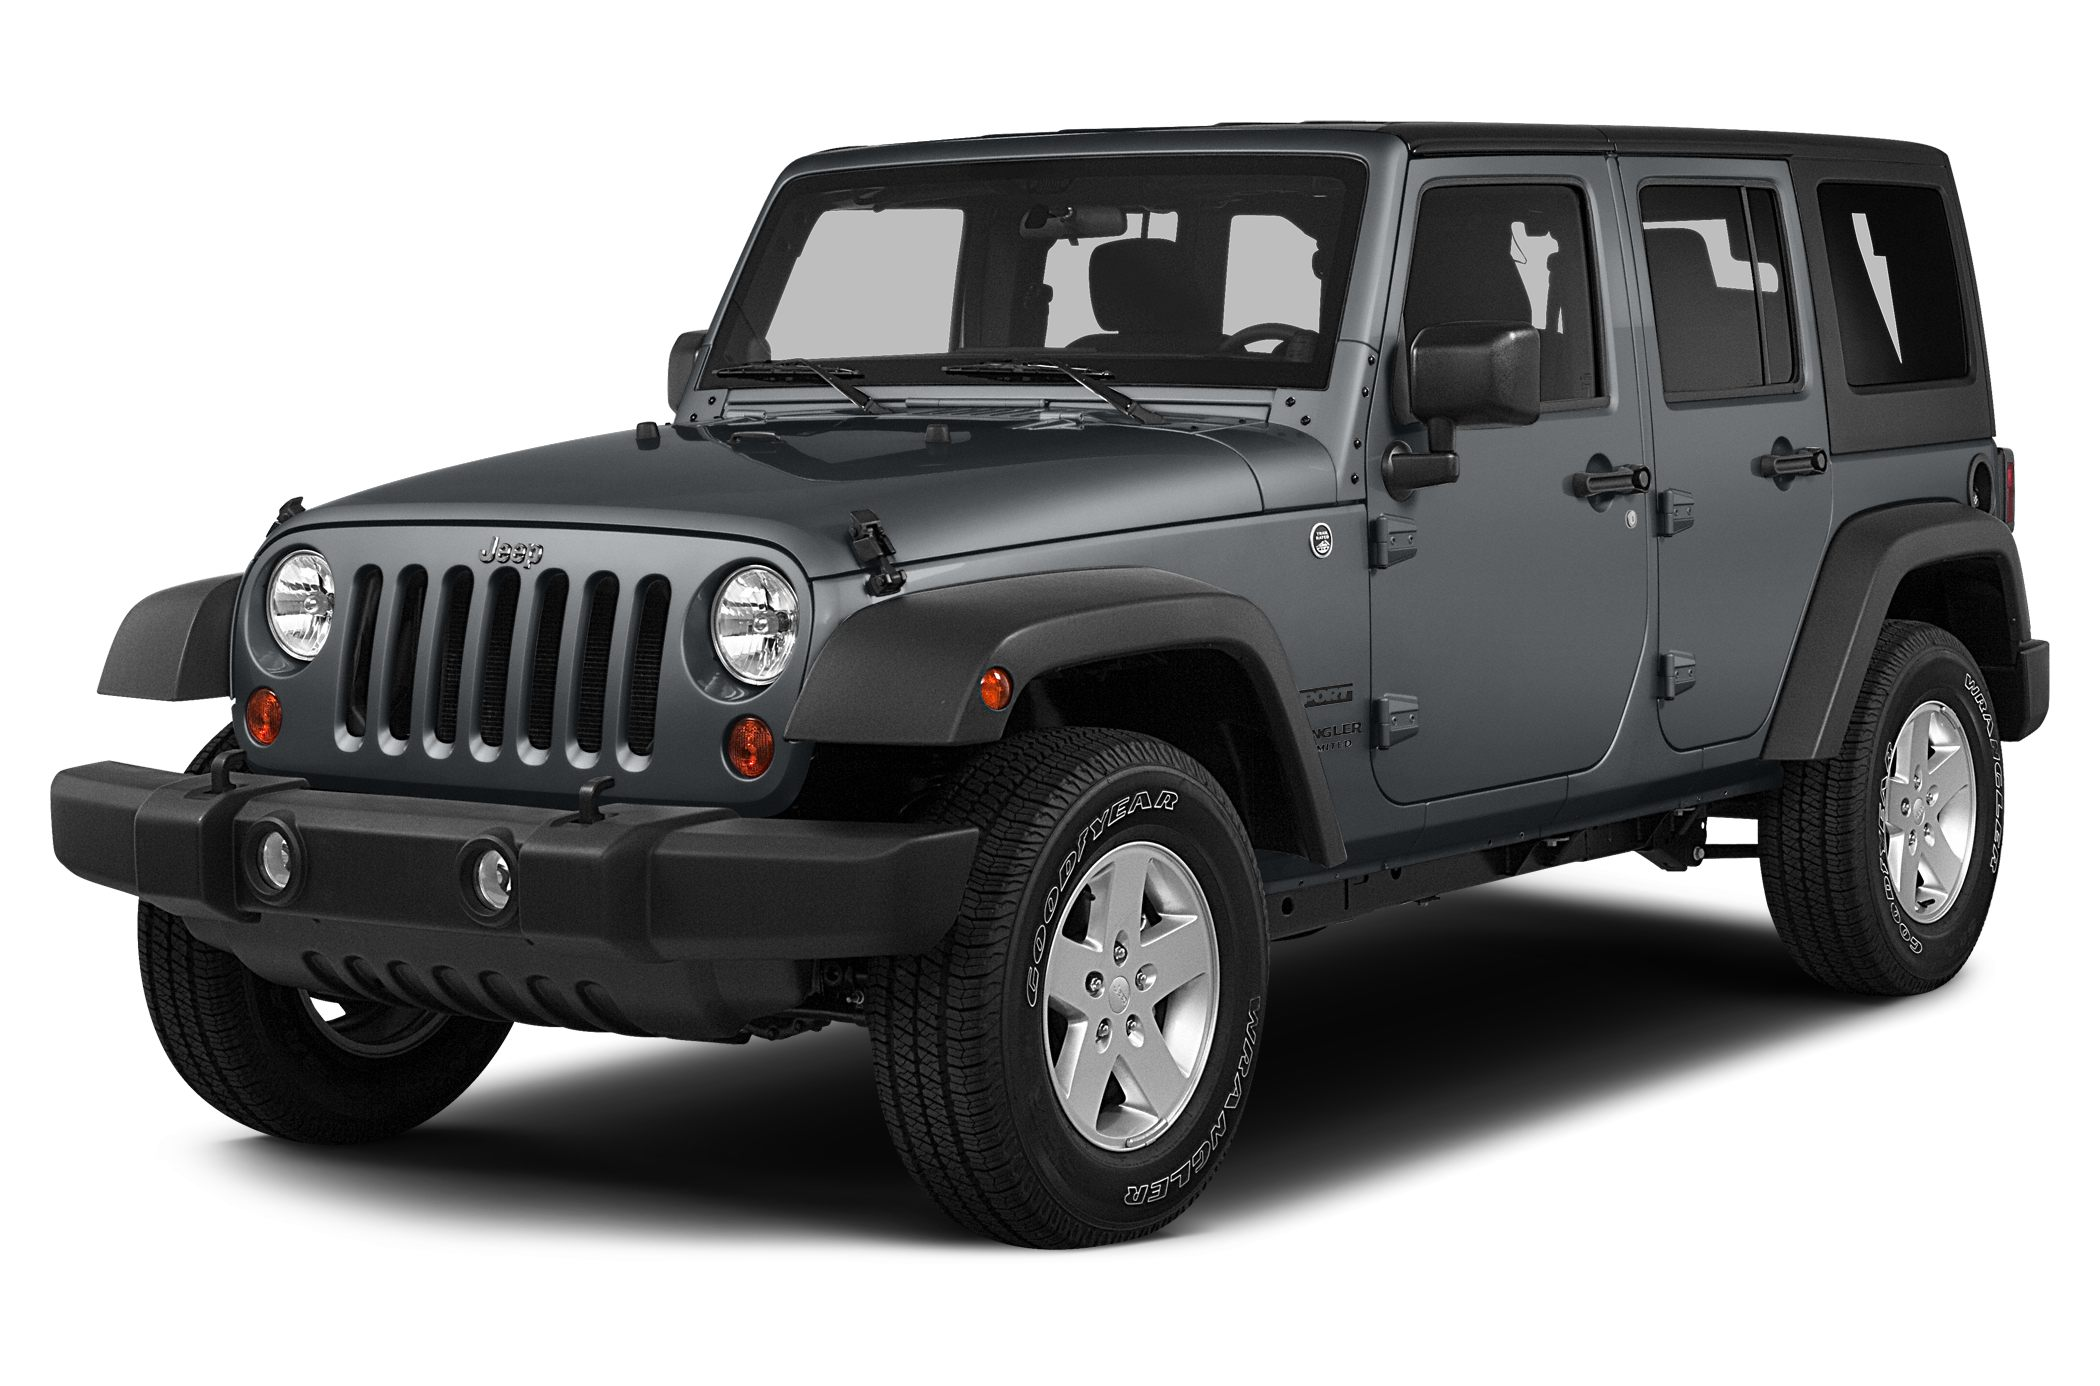 2015 Jeep Wrangler Unlimited Sahara SUV for sale in Tacoma for $41,645 with 12 miles